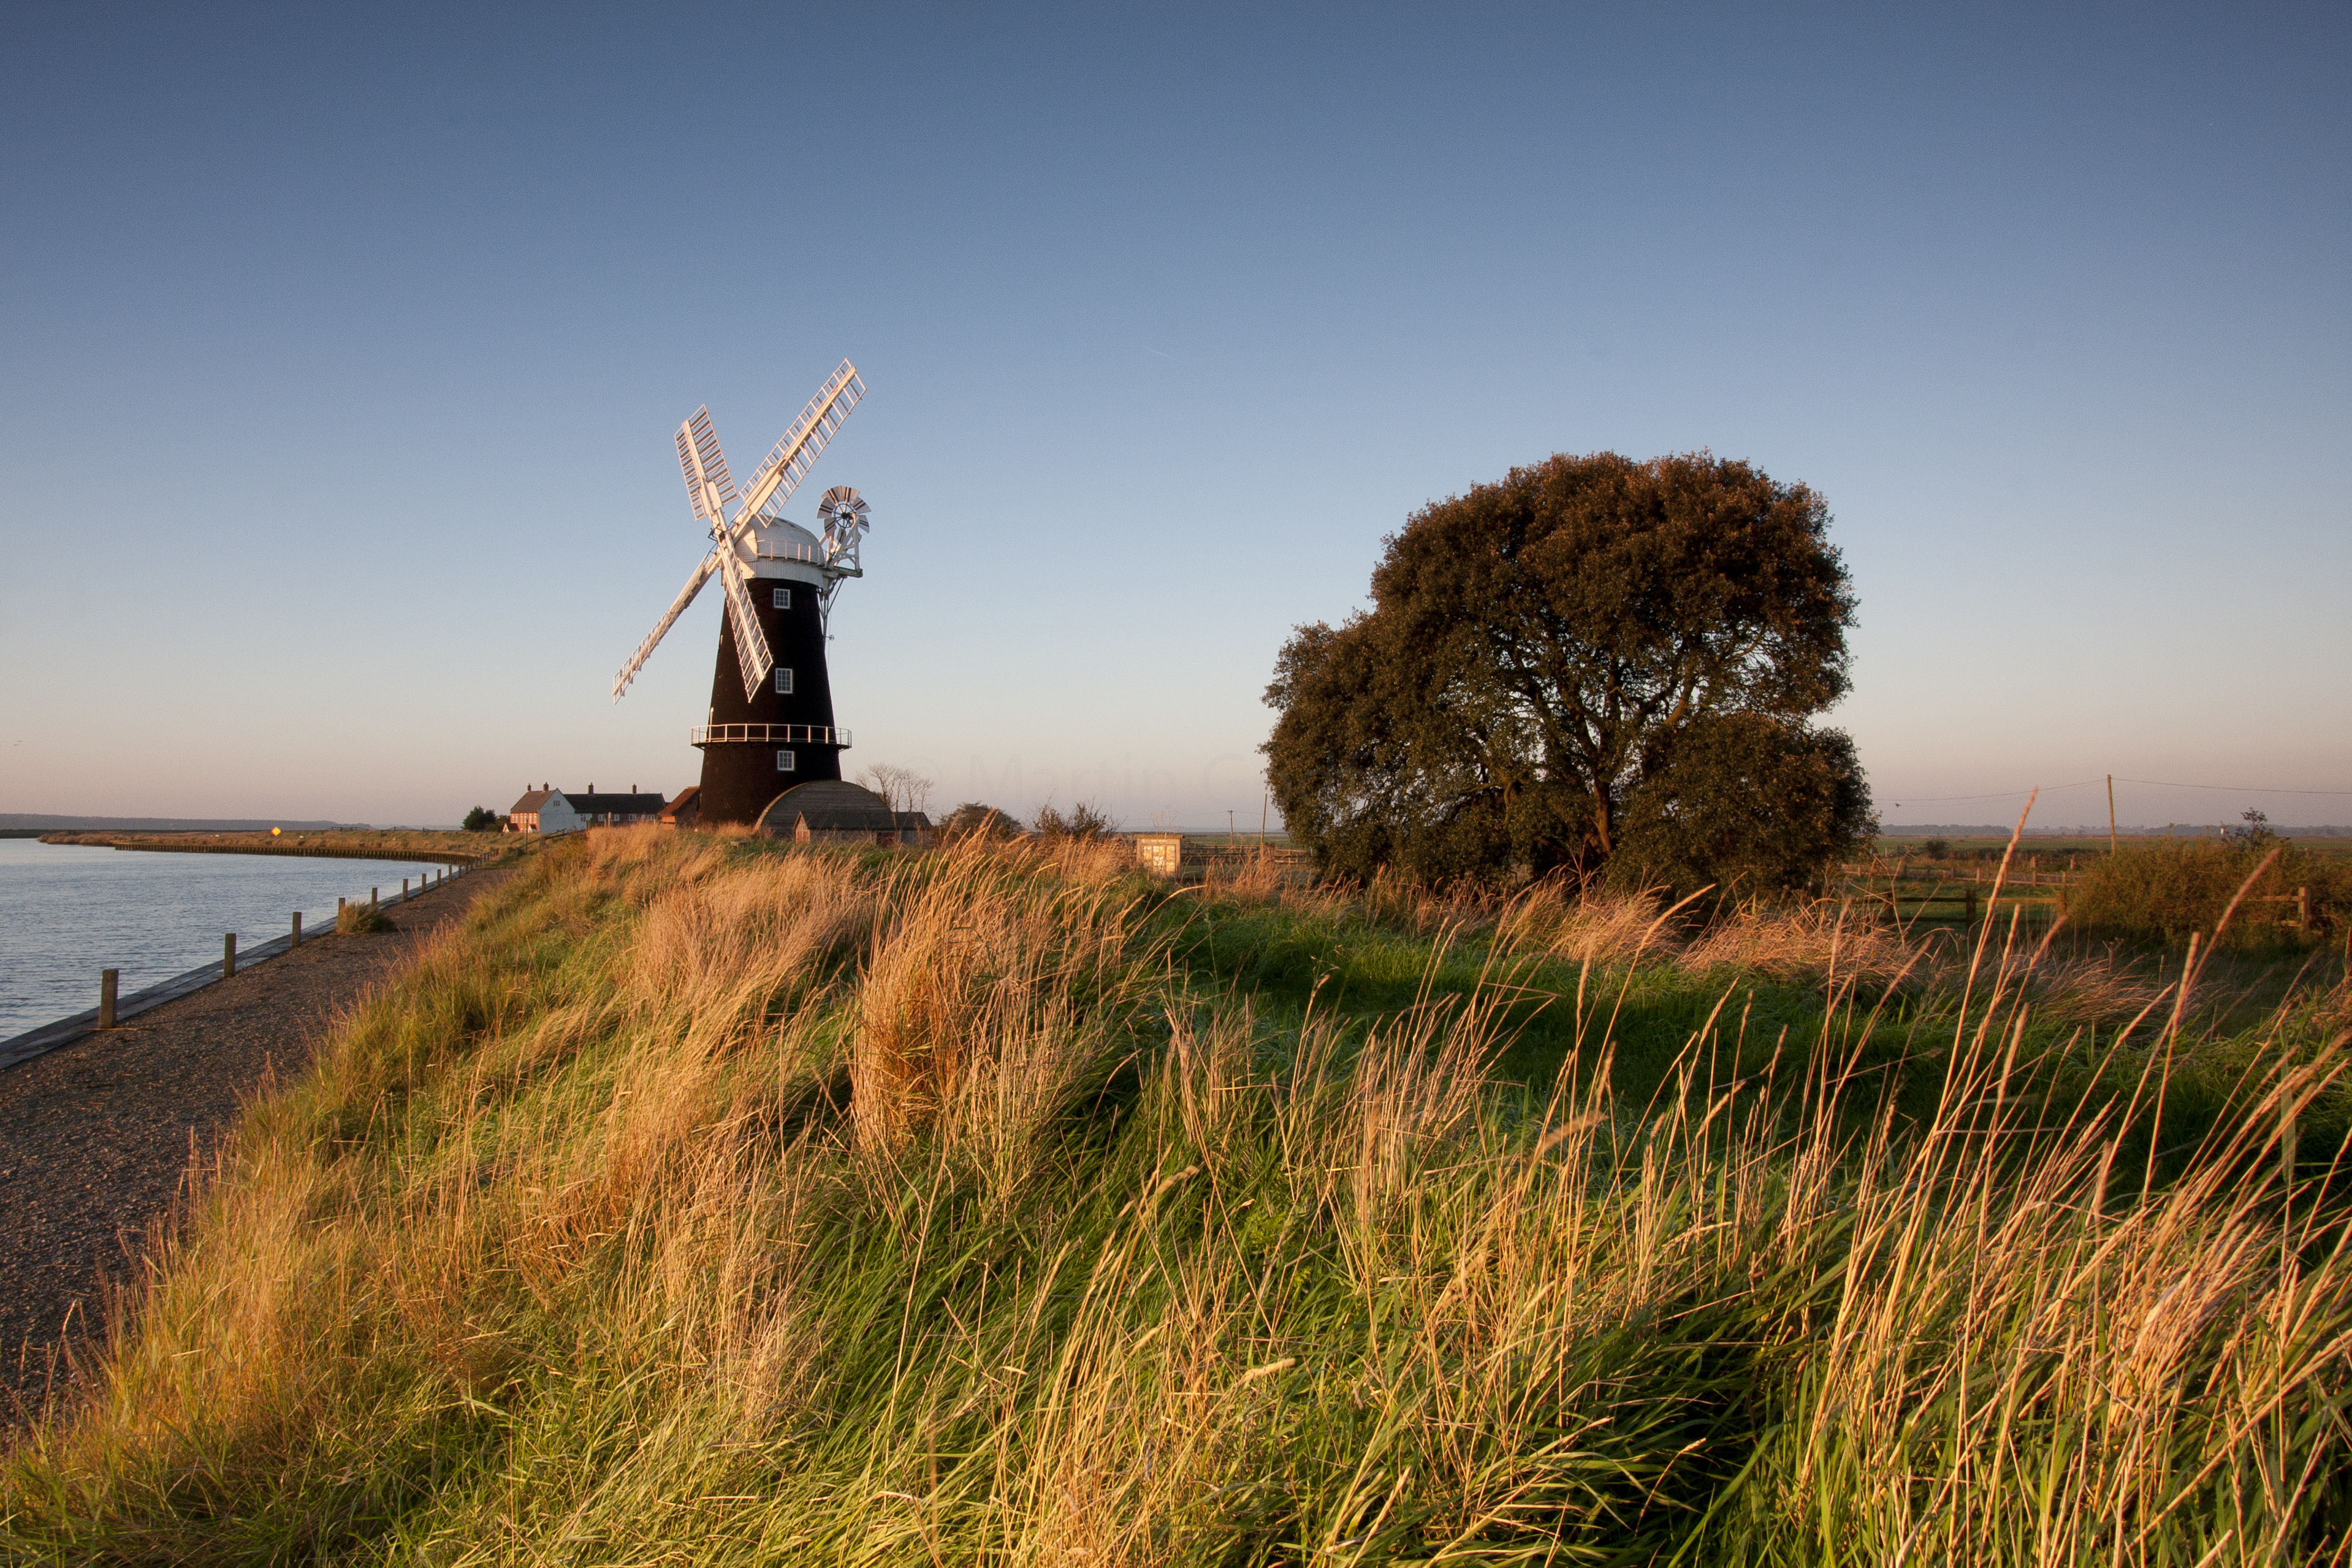 The Windmills of the Norfolk Broads